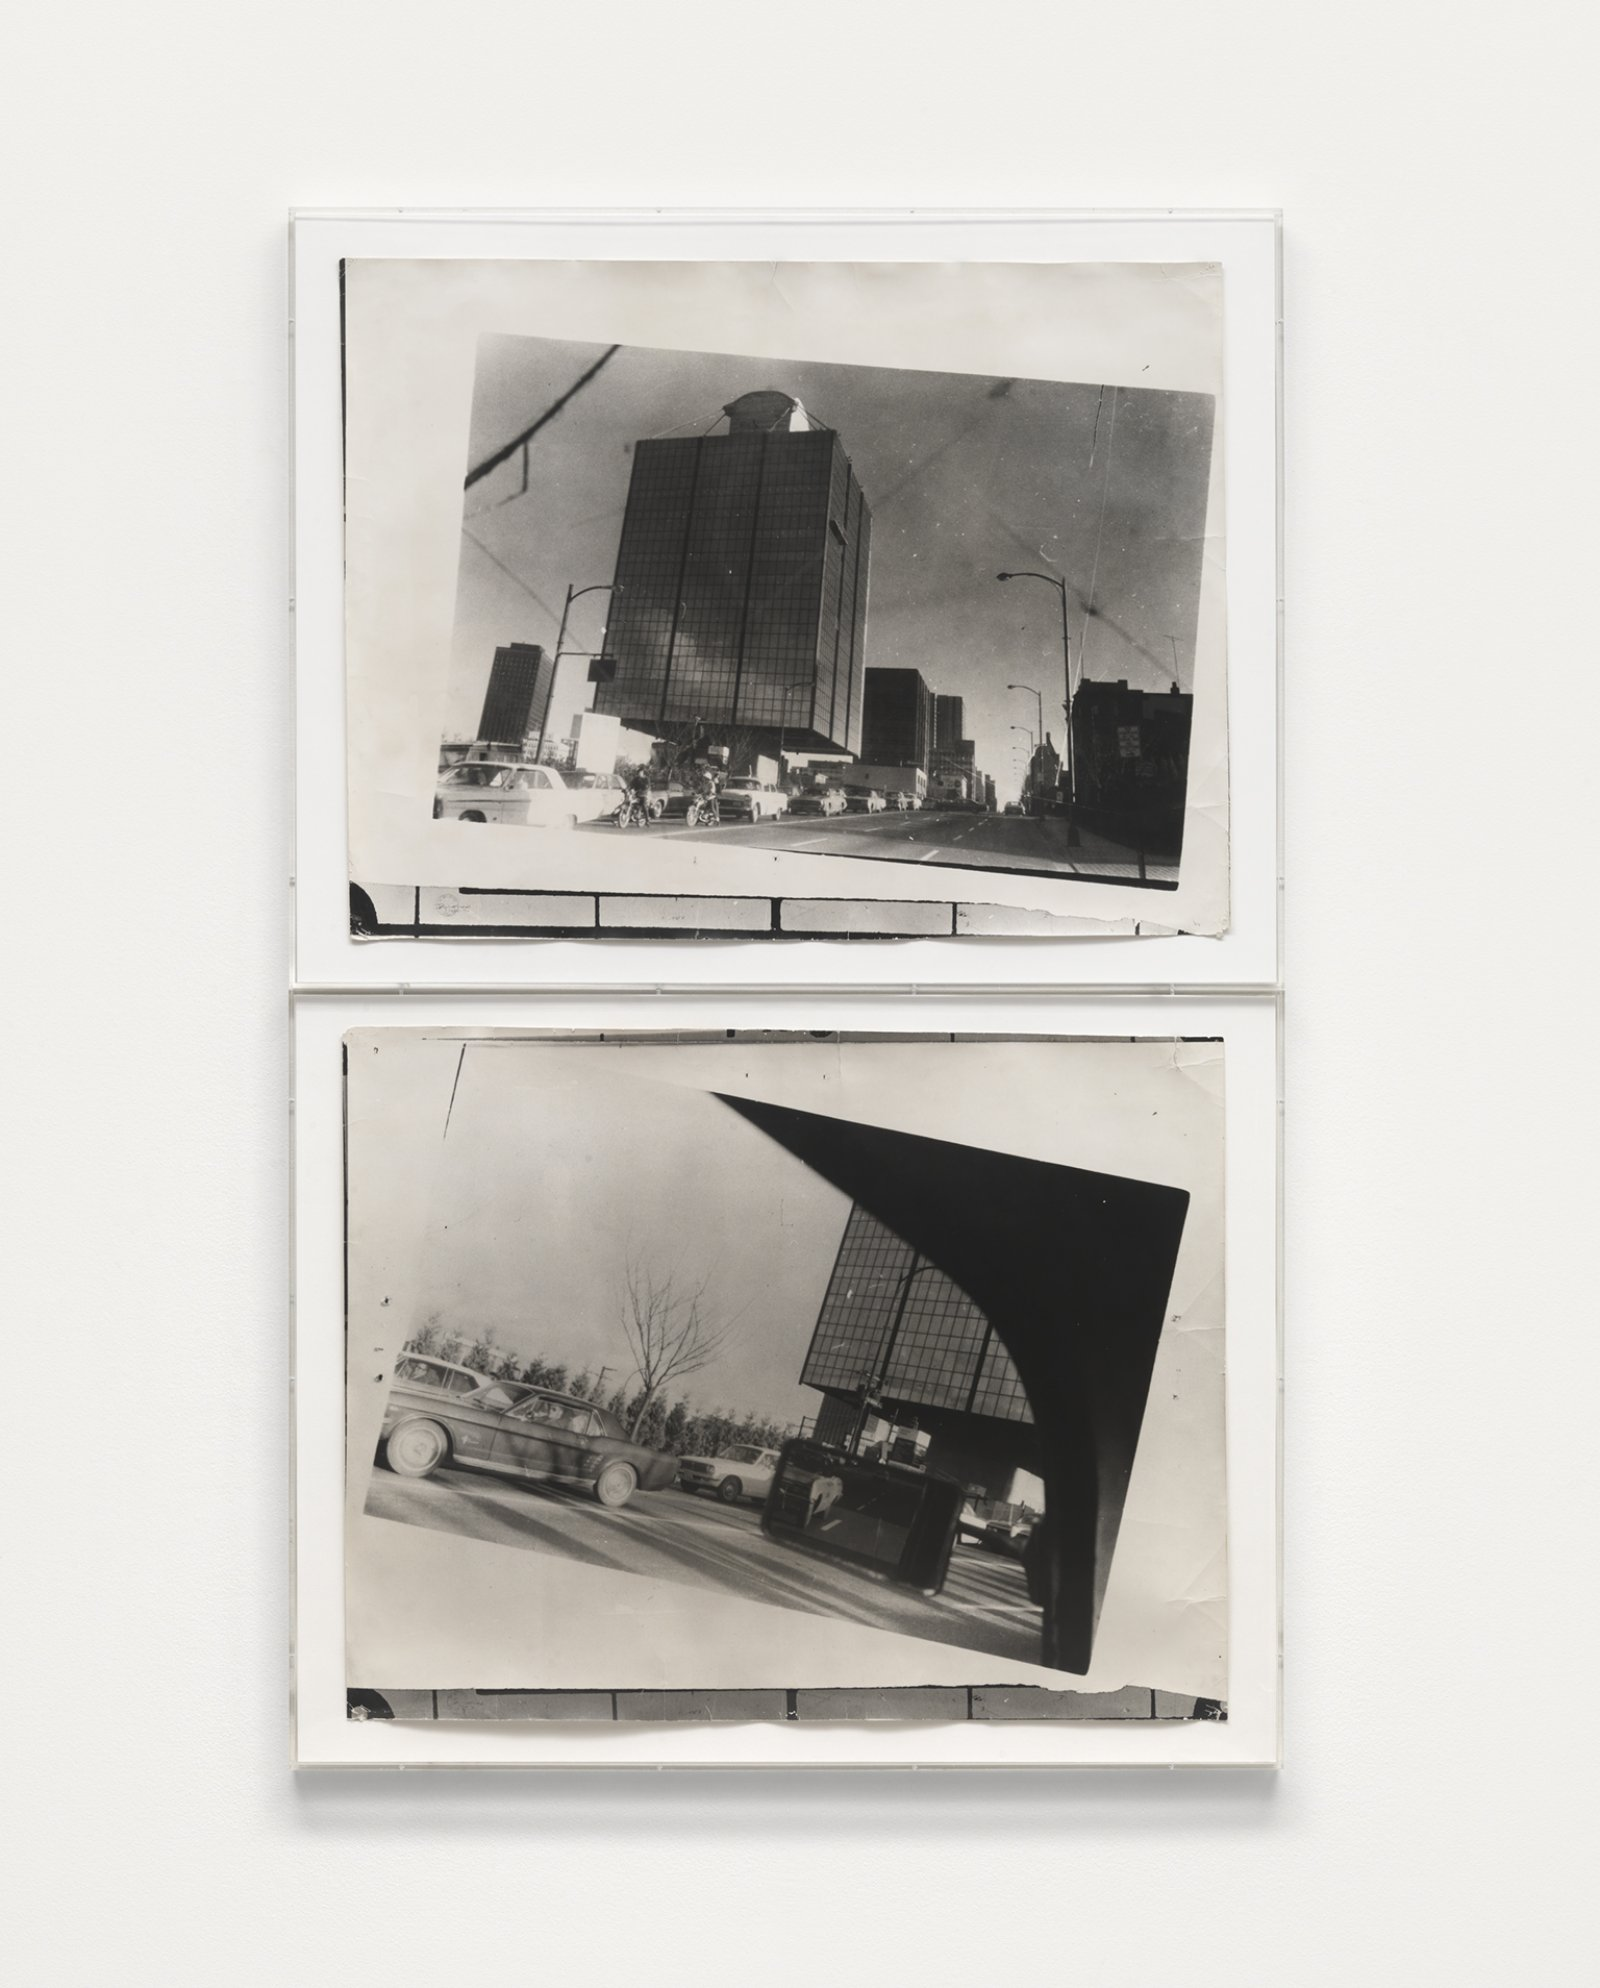 Ian Wallace, Untitled, 1969–1970, 2 black and white photographs, 71 x 45 in. (179 x 114 cm) by Ian Wallace